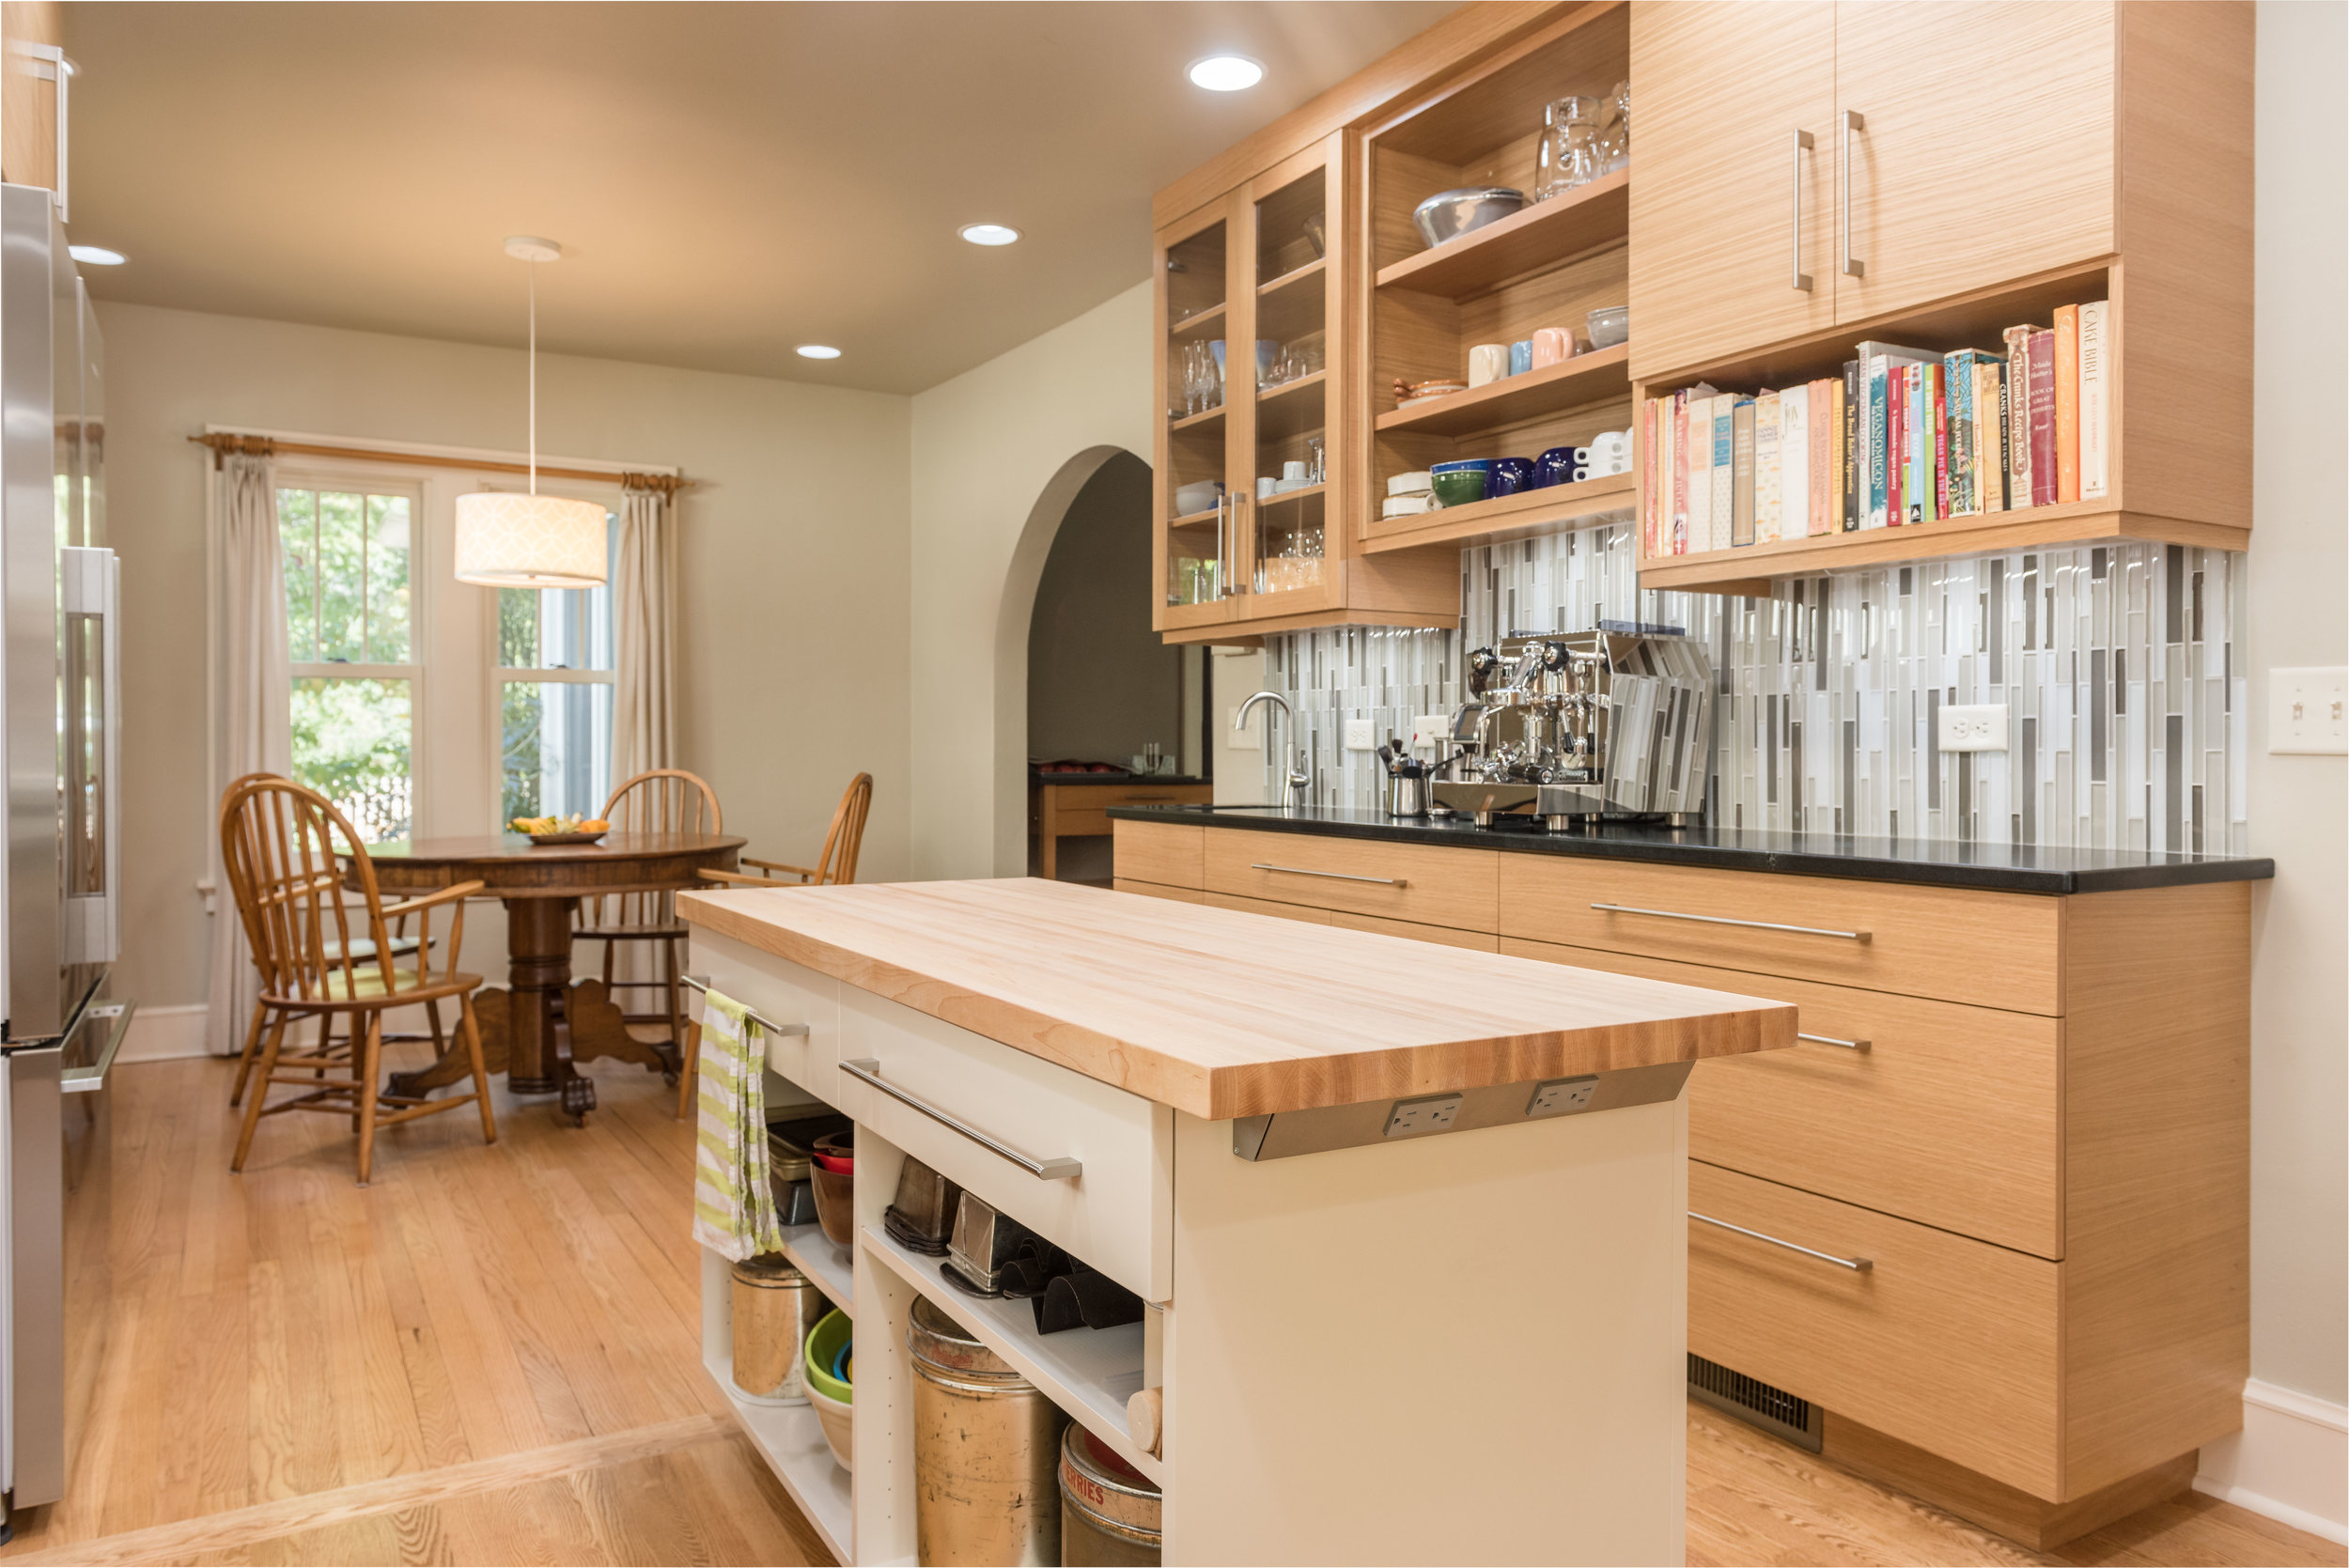 Kitchen Remodel - Architectural Photography